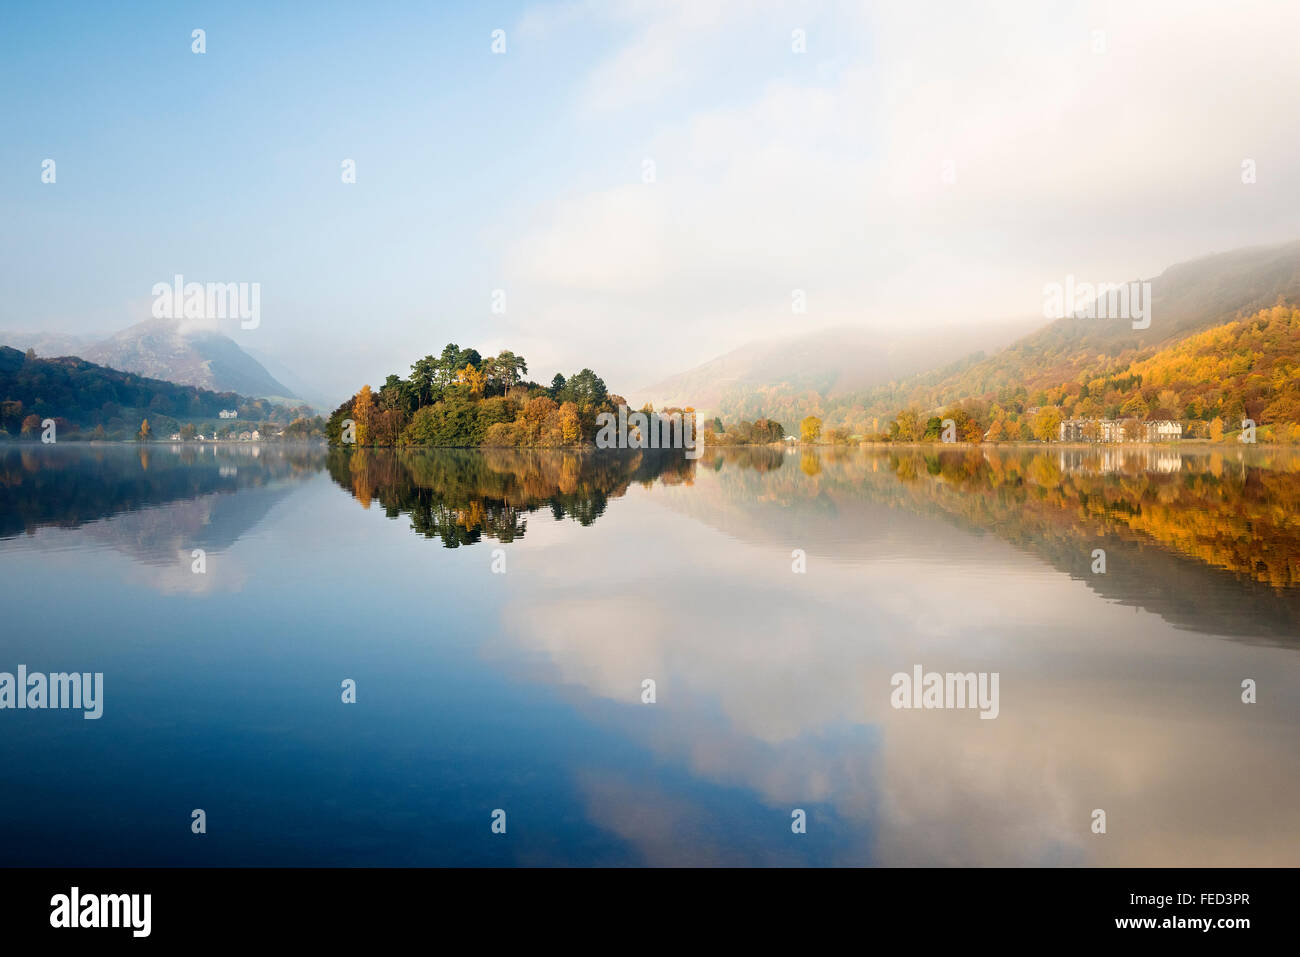 Grasmere reflections, Cumbria, UK - Stock Image